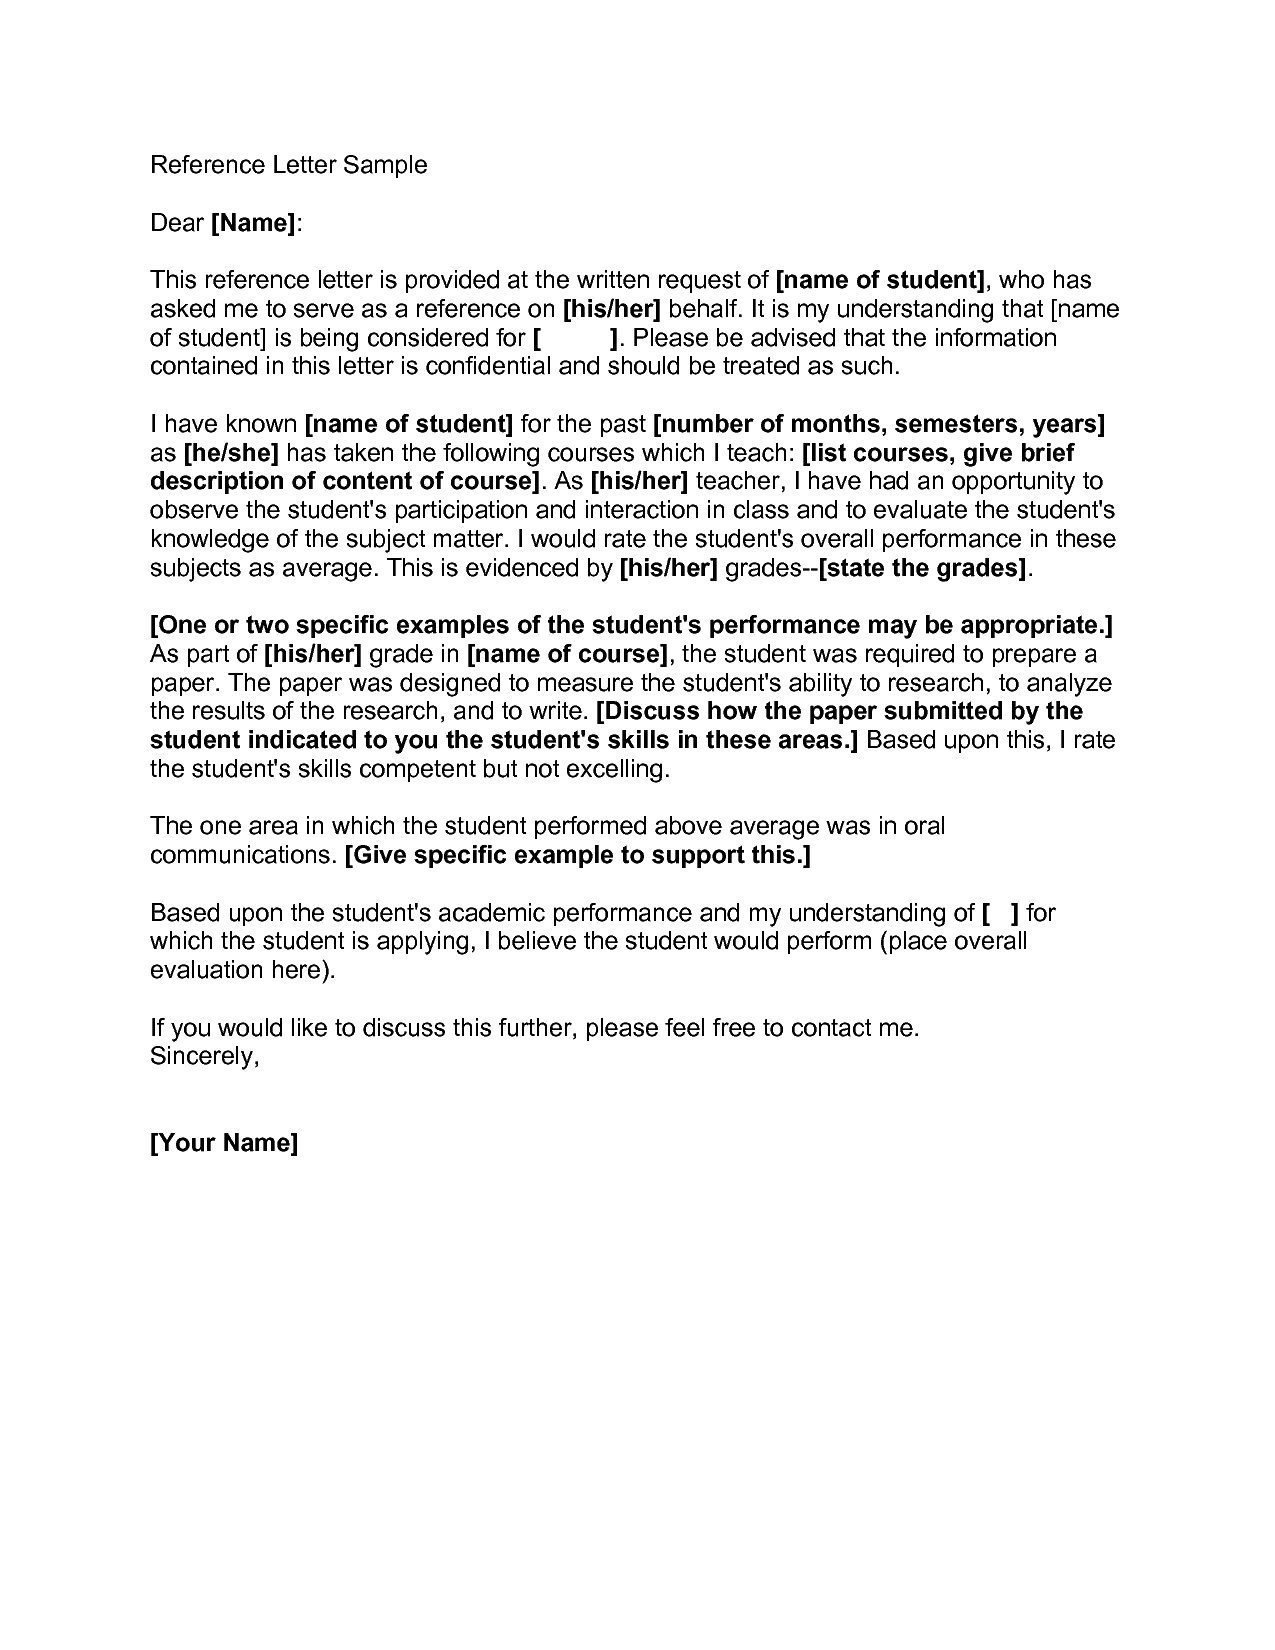 Great Reference Letter SamplesExamples Of Reference Letters Request Letter Sample  How To Write A Employee Reference Letter